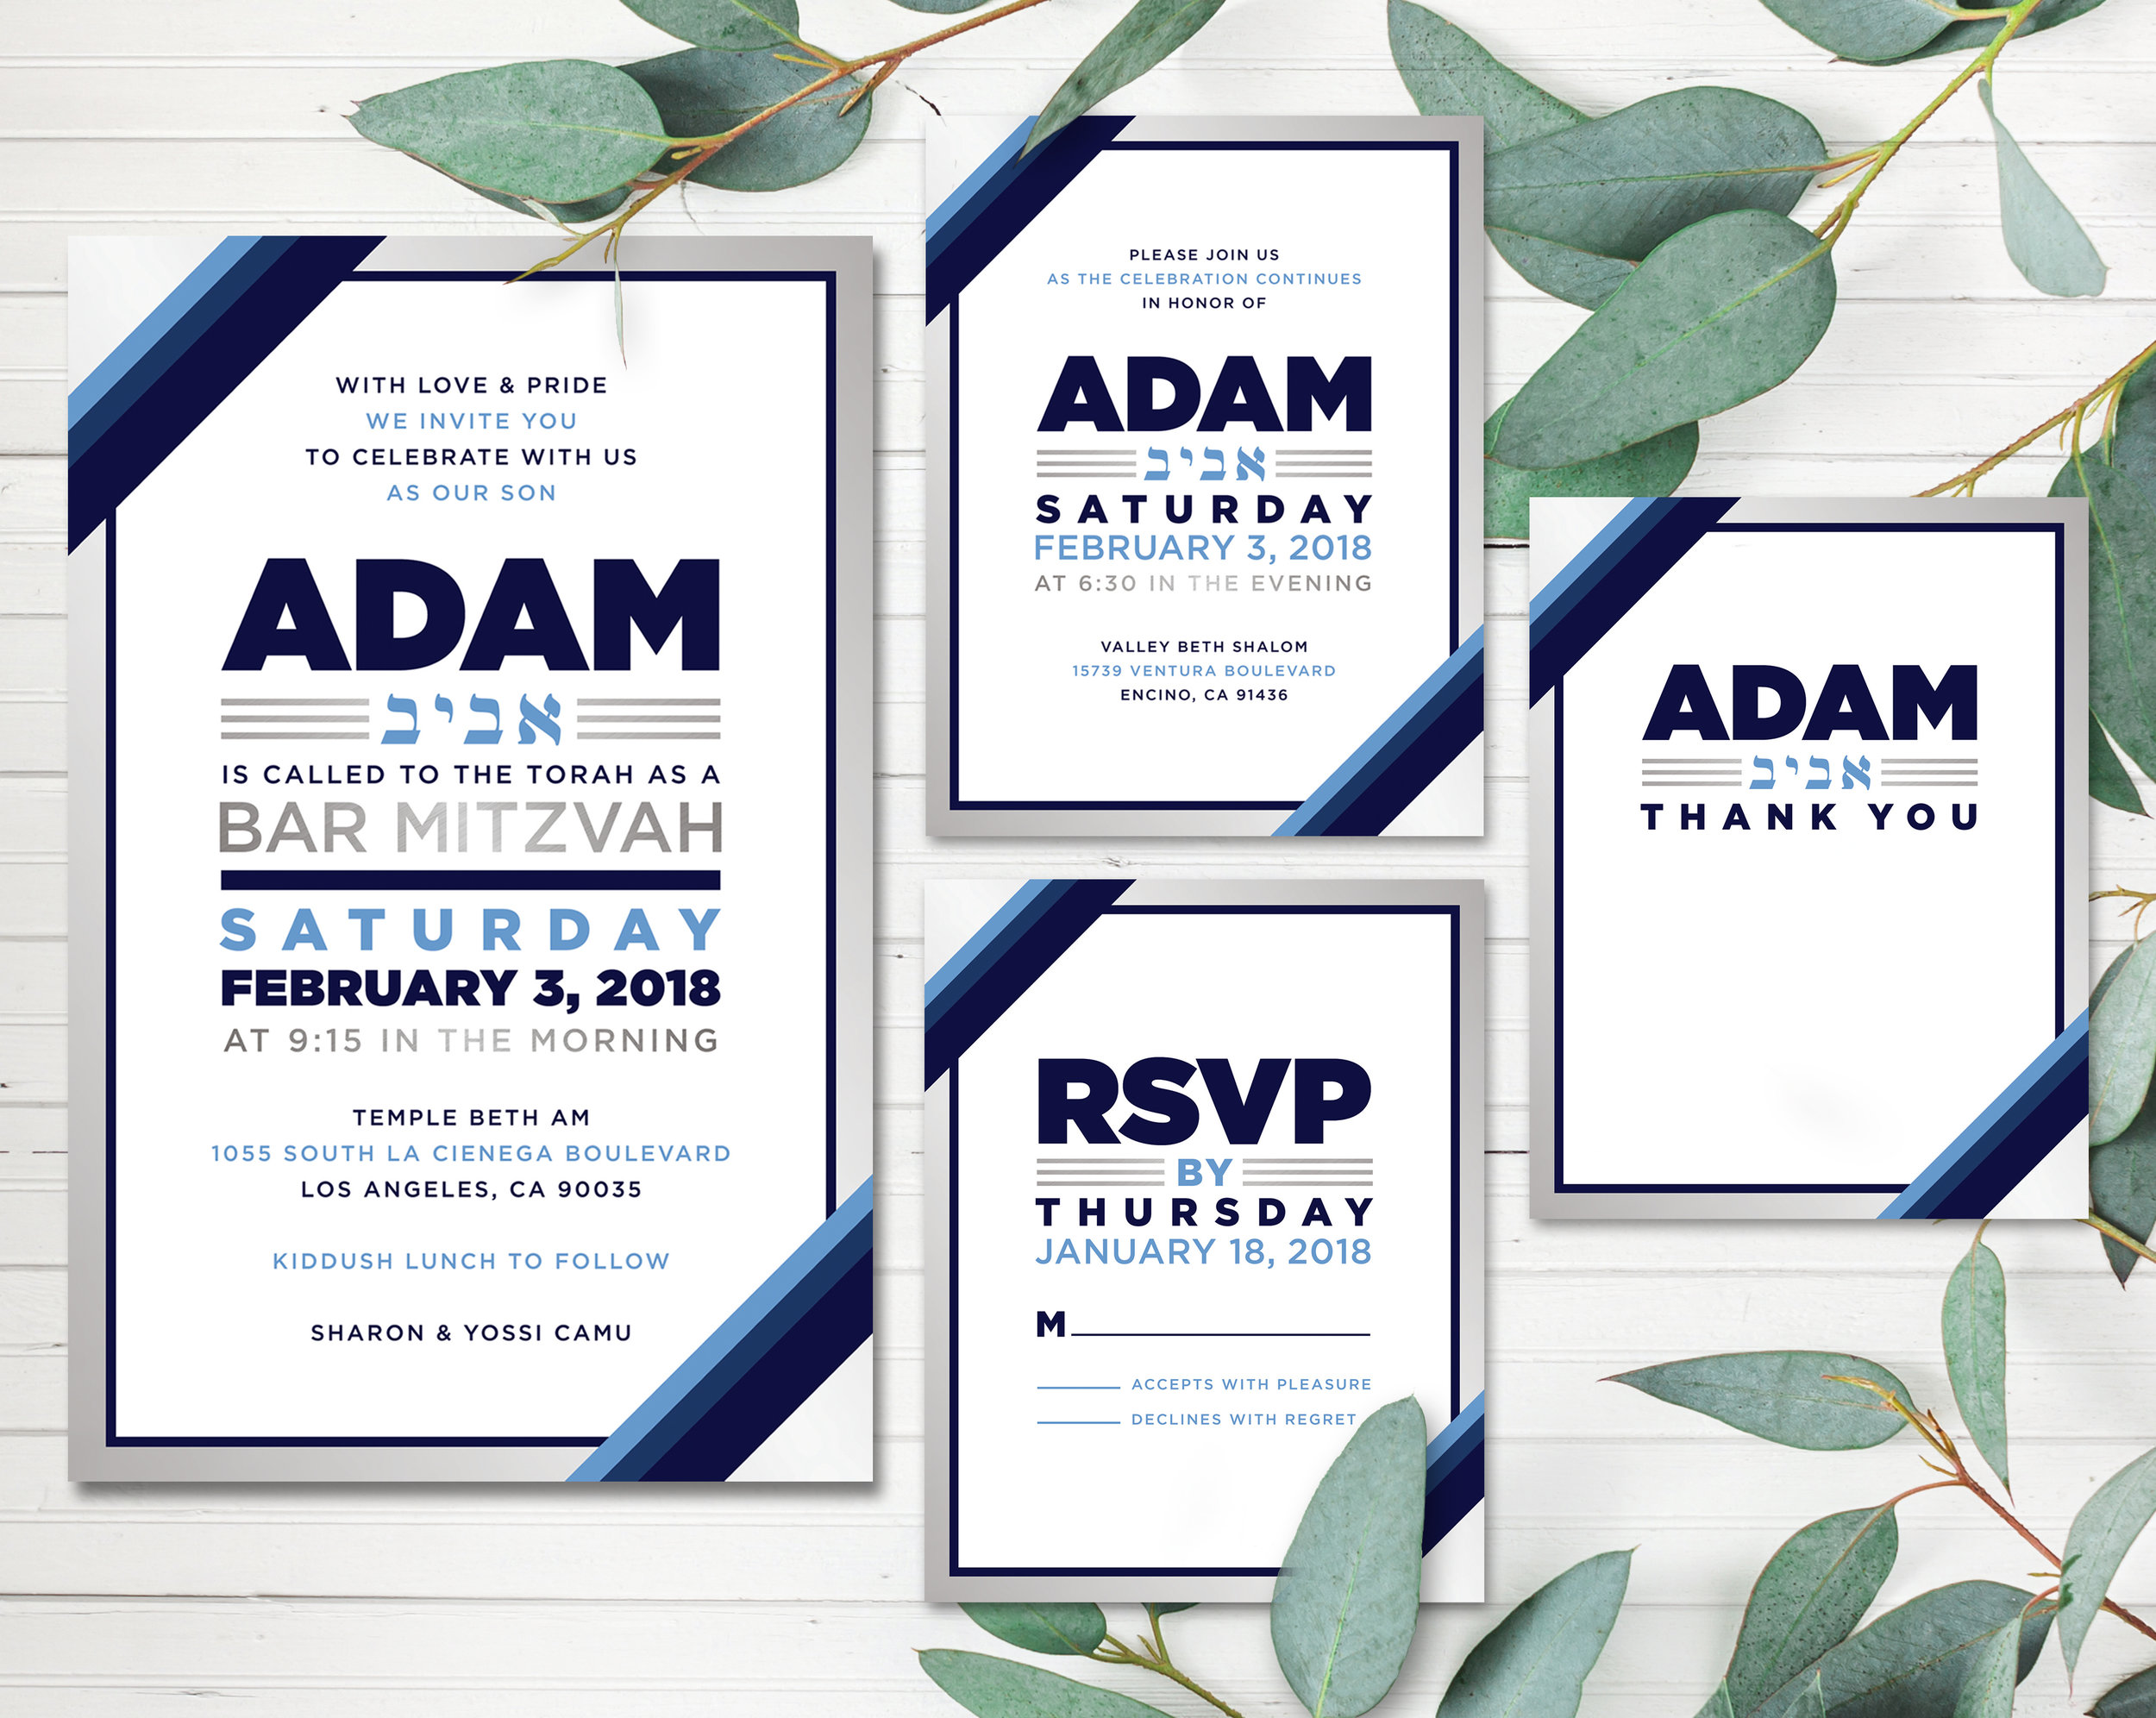 Invitation_Suite_Mockup.jpg